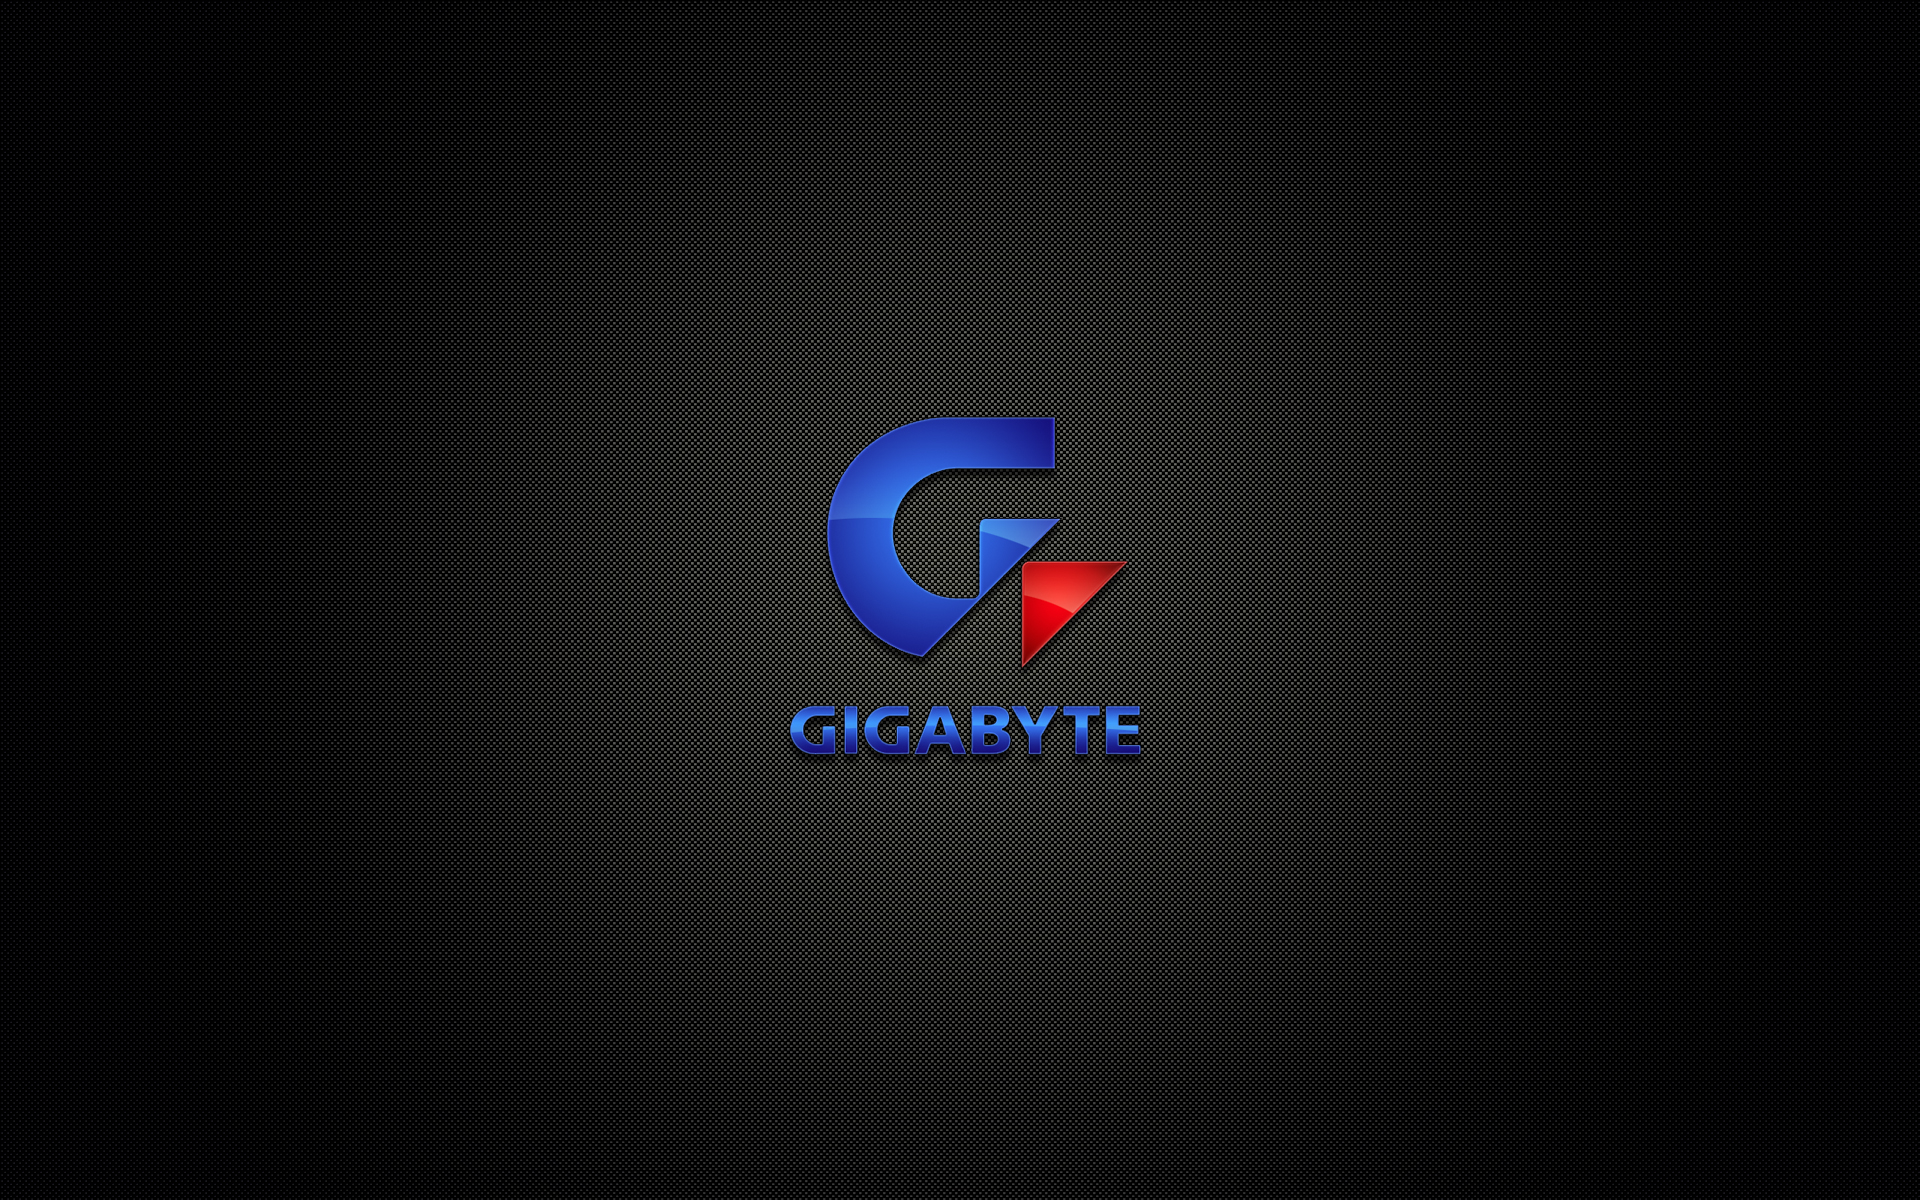 gigabyte motherboards computer wallpapers - photo #27